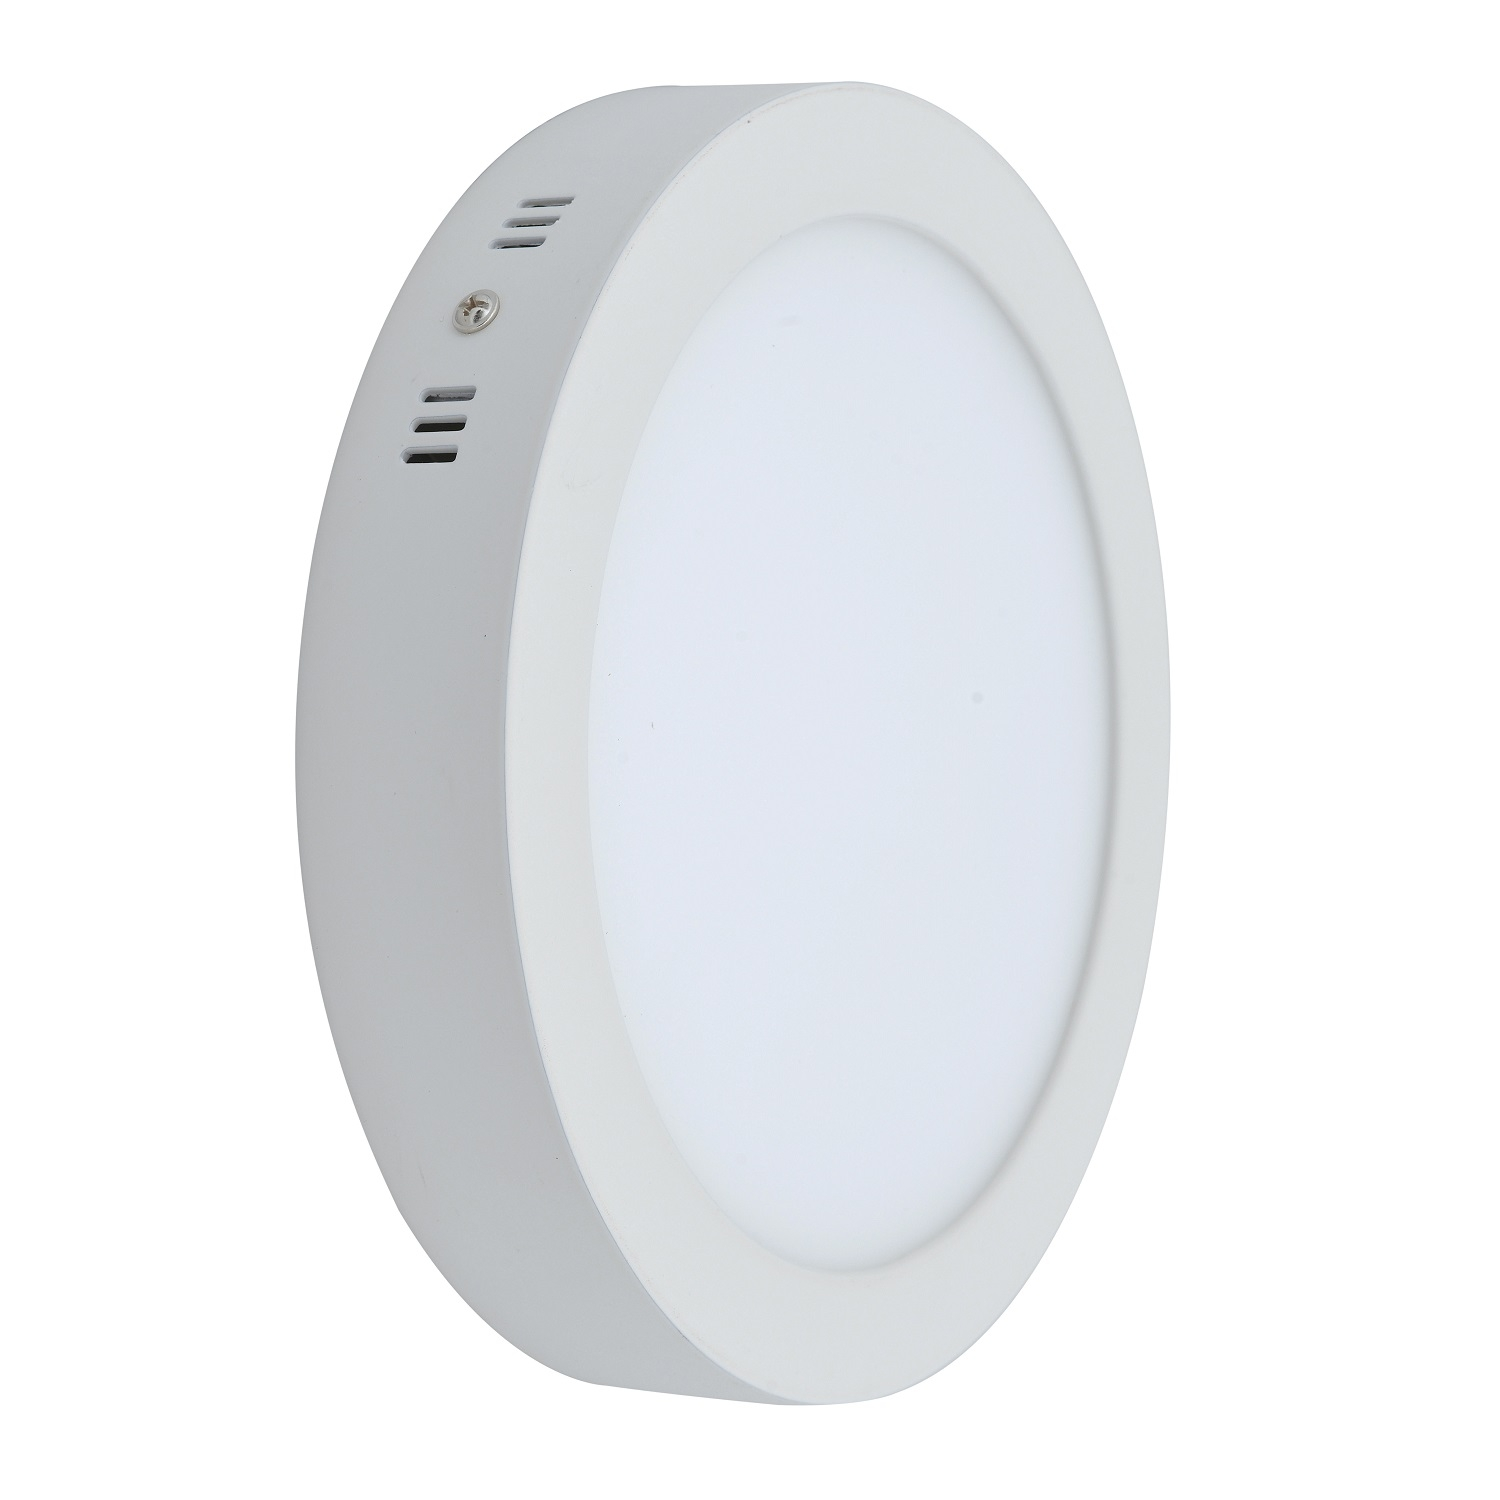 Pl04 Led Ceiling Light P 1034 further What Are The Main Differences Between The Diva Cfl Led Ring Light further Edm Music Visuals Vj Pack besides Underwater Bedroom Ideas Under Sea likewise 567864 Lights Setup Axial Yeti. on led magic lights